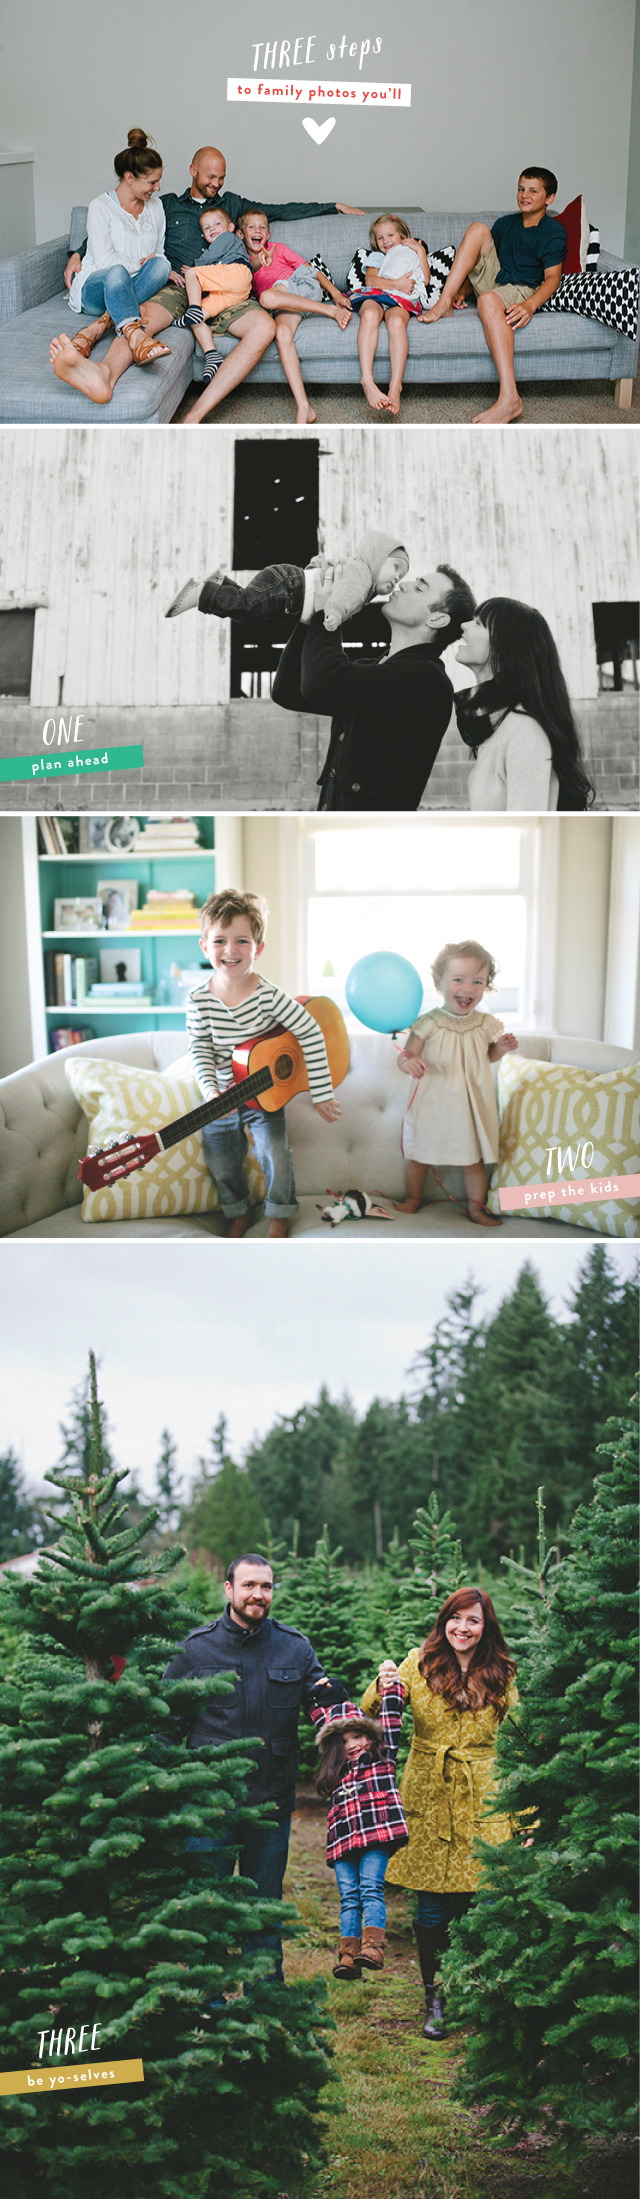 3-steps-to-family-photos-you'll-love